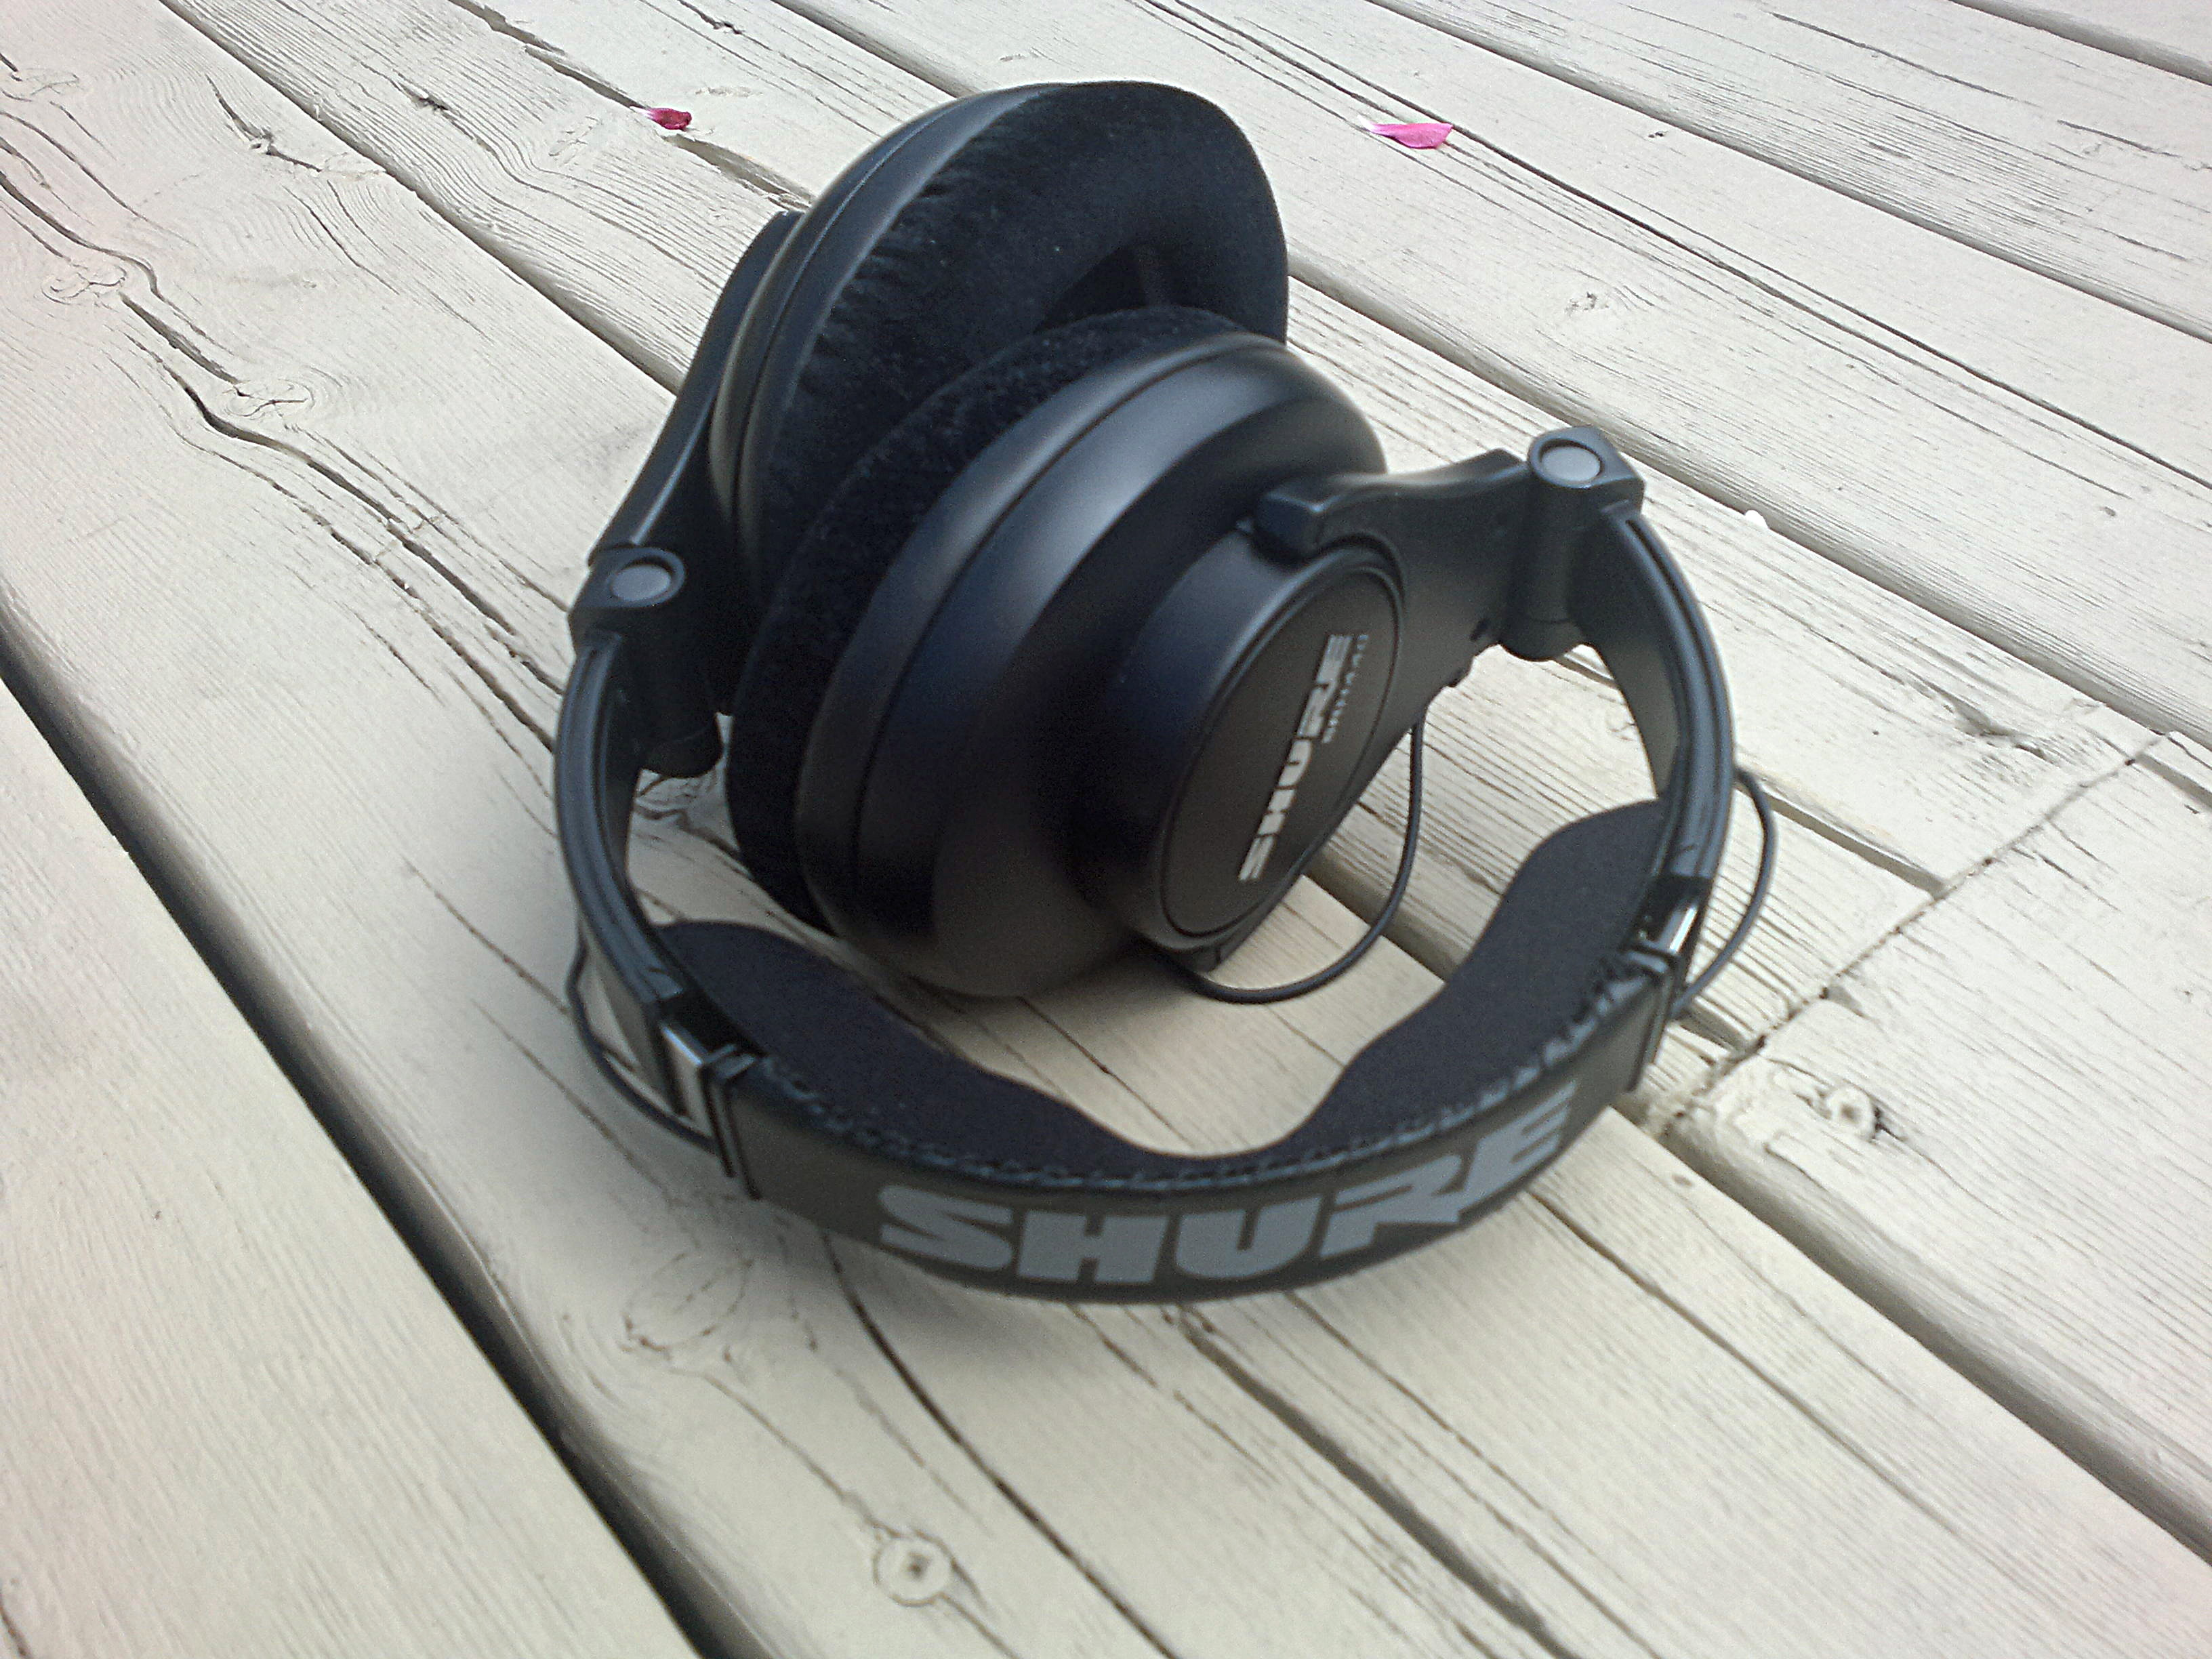 0338b8bd54f Shure SRH440 Impression | Page 17 | Headphone Reviews and Discussion ...